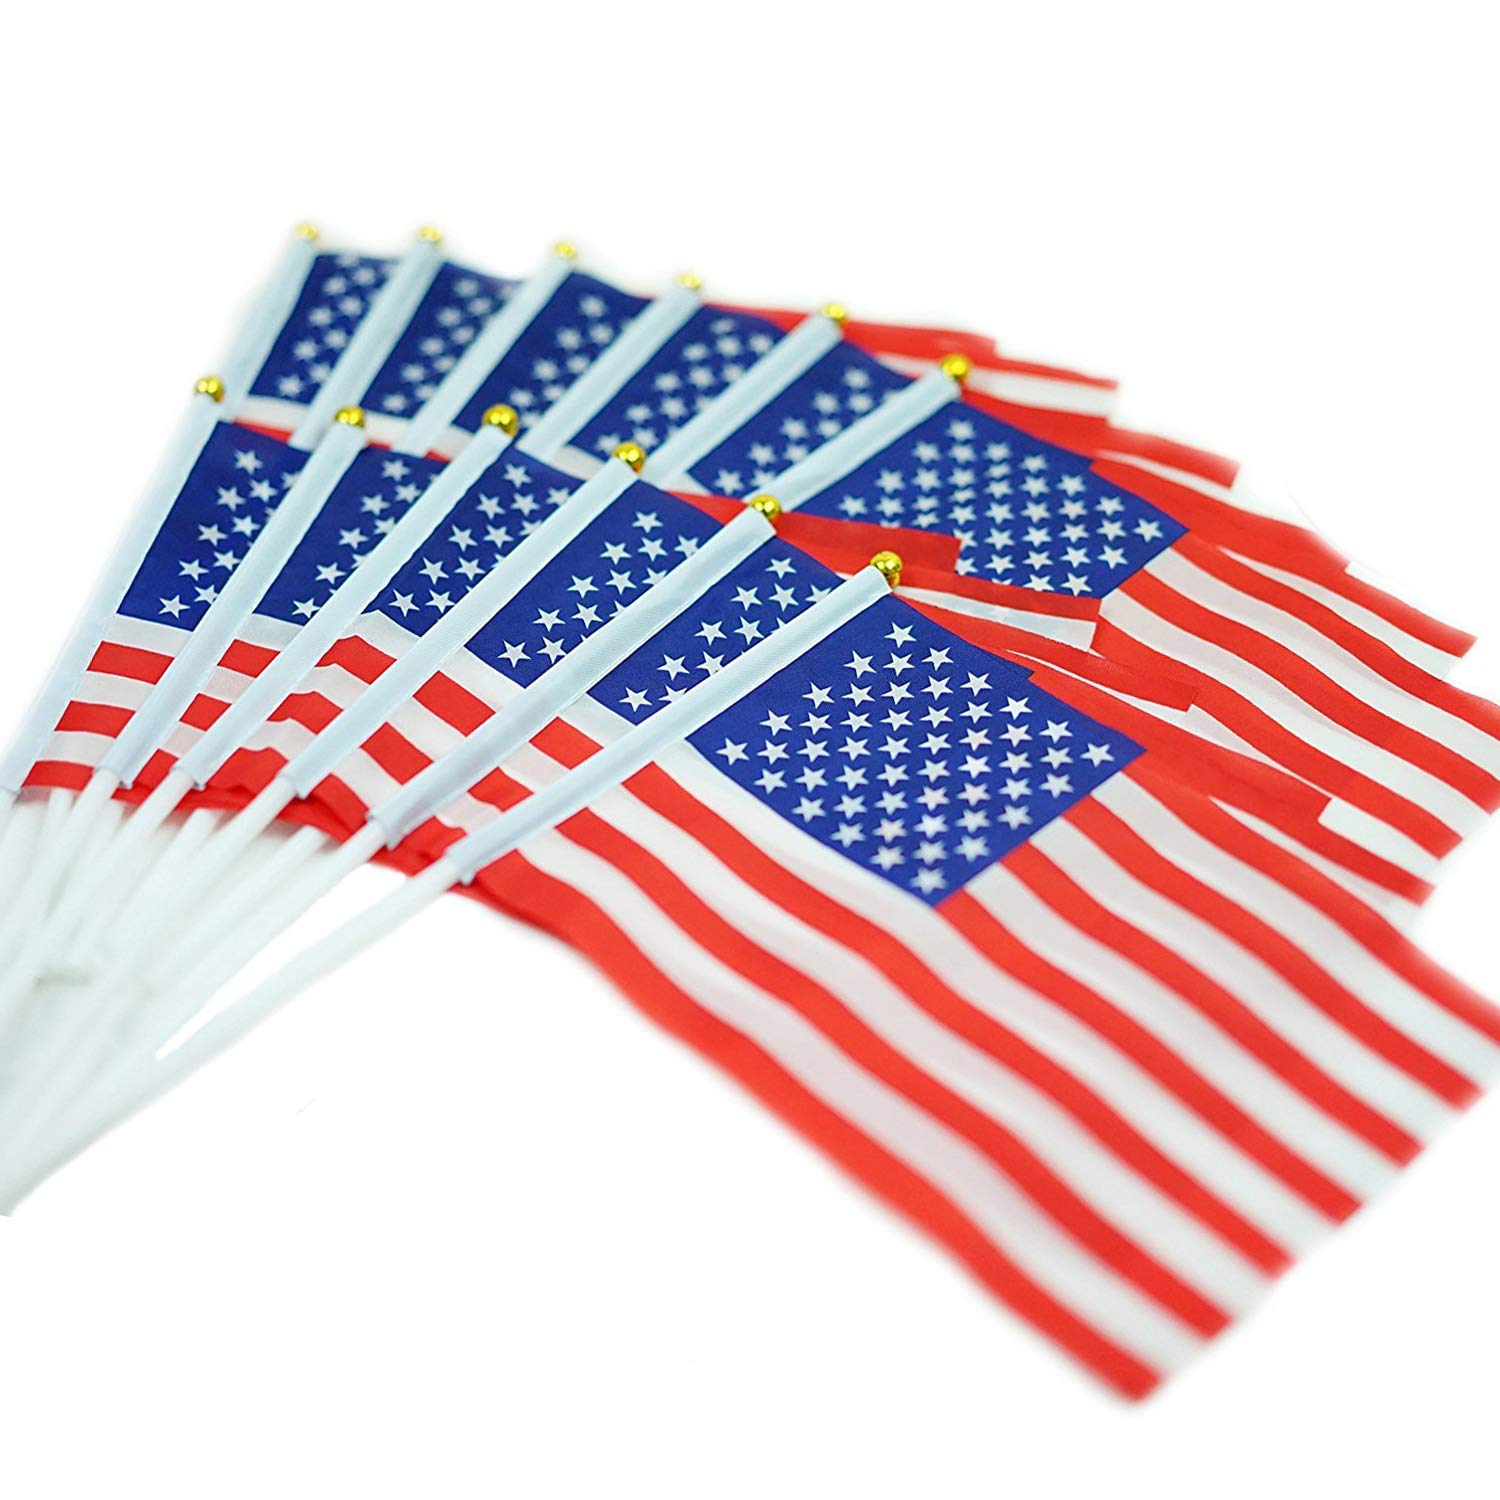 Jetlifee Small American Flags 5 x 8 inch by US Veterans Owned Biz. Small US Flag/Mini American Stick Flag/USA Stick Flag (Pack of 12)